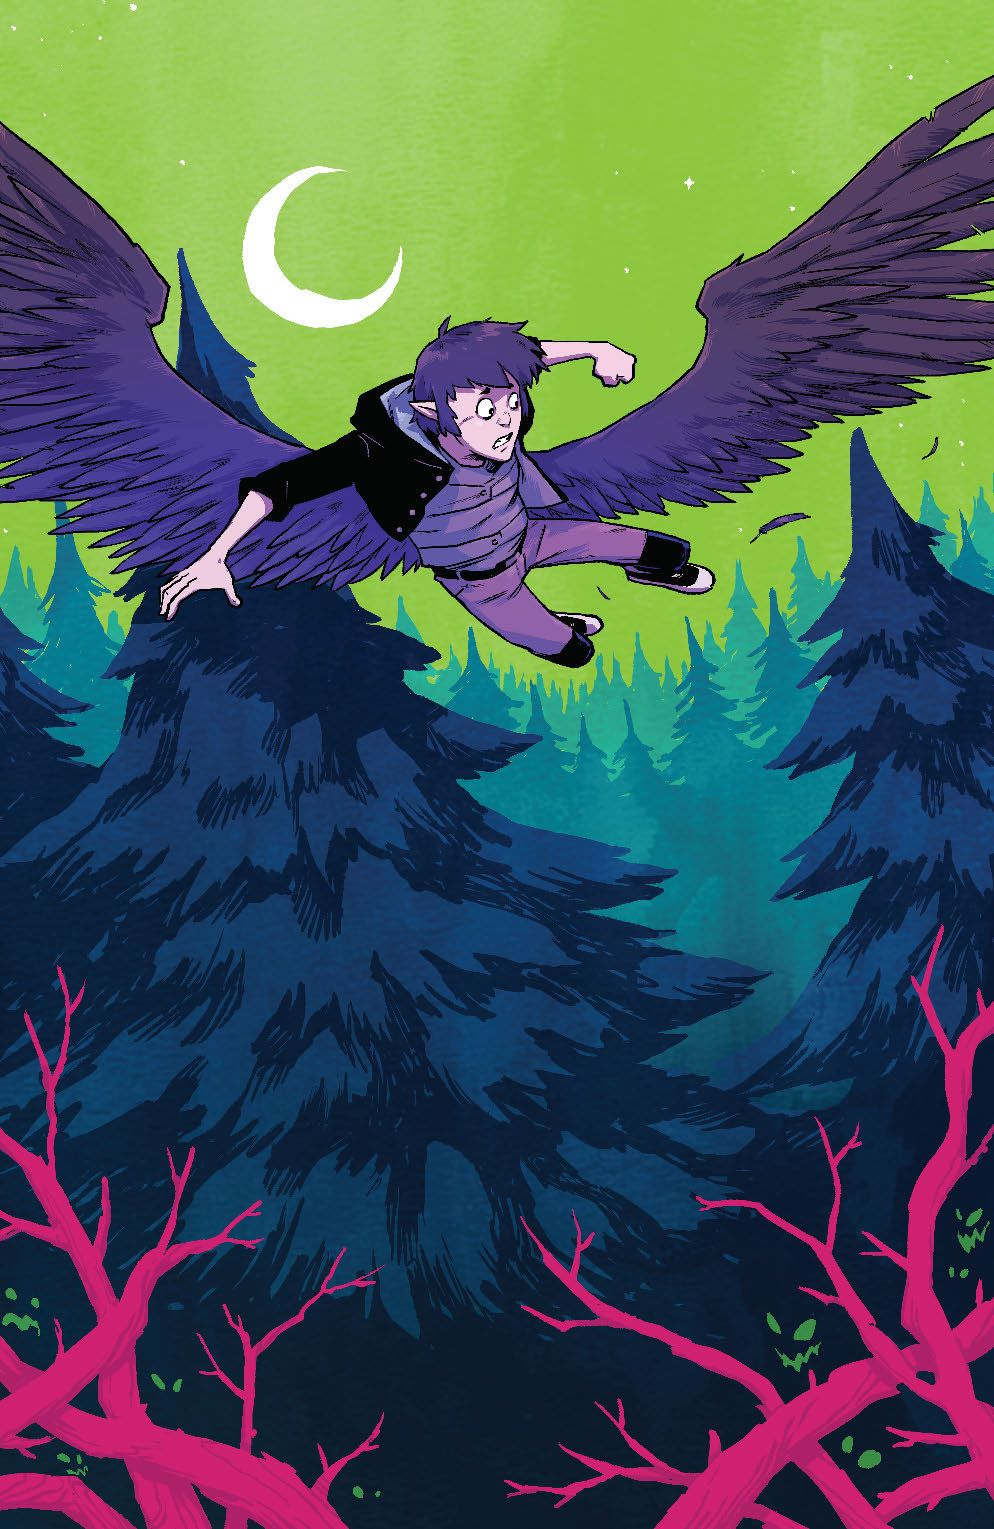 Wynd_006_Cover_D_Unlockable ComicList Previews: WYND #6 (OF 5)